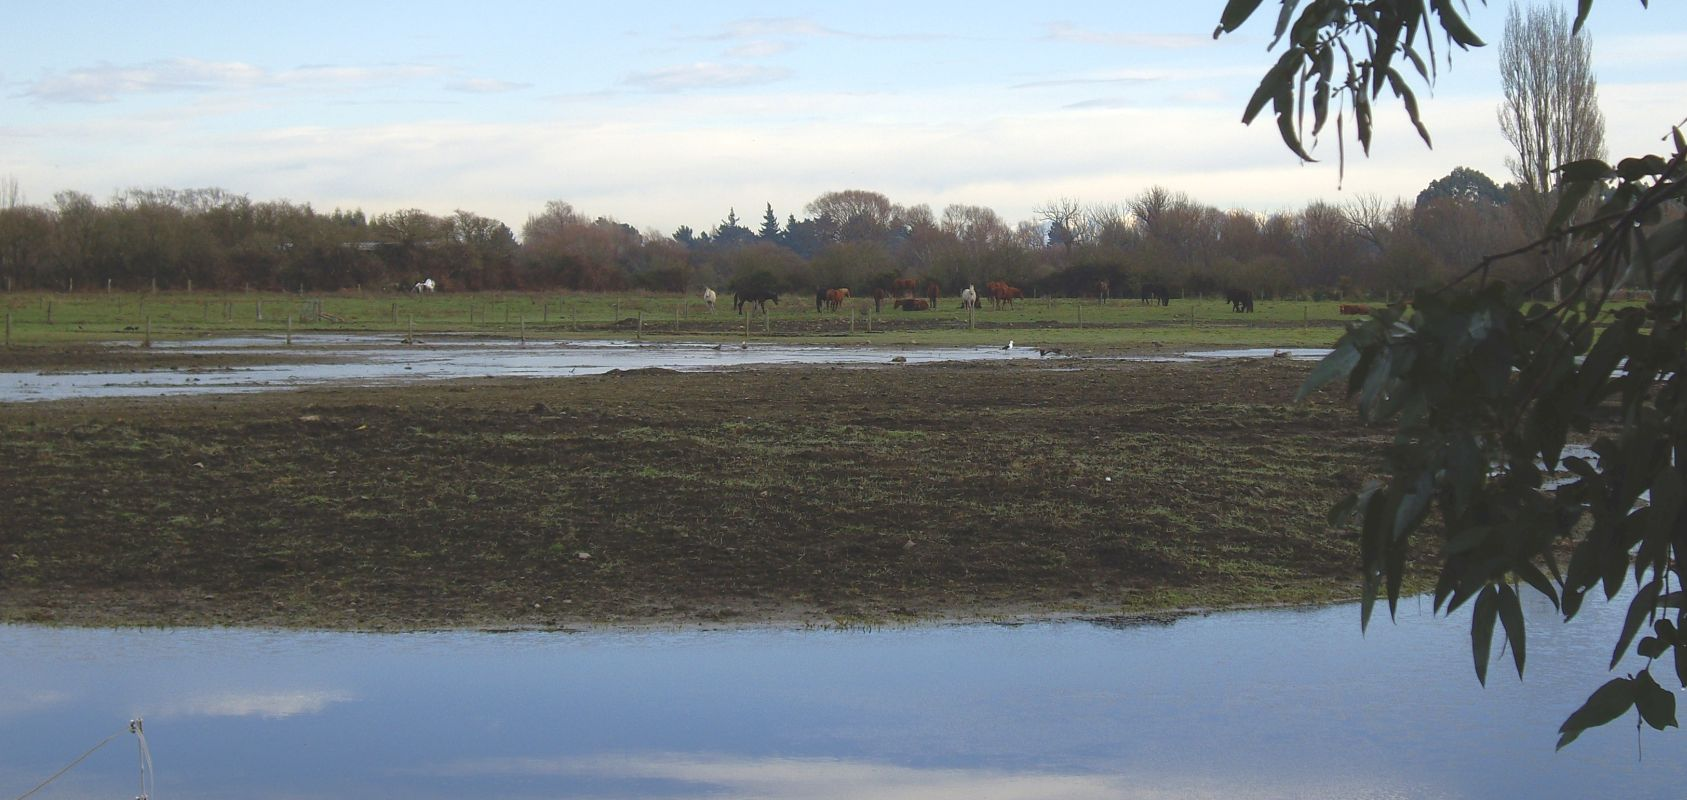 View of a  boggy paddock, pools in the foreground and horses grazing in the distance.